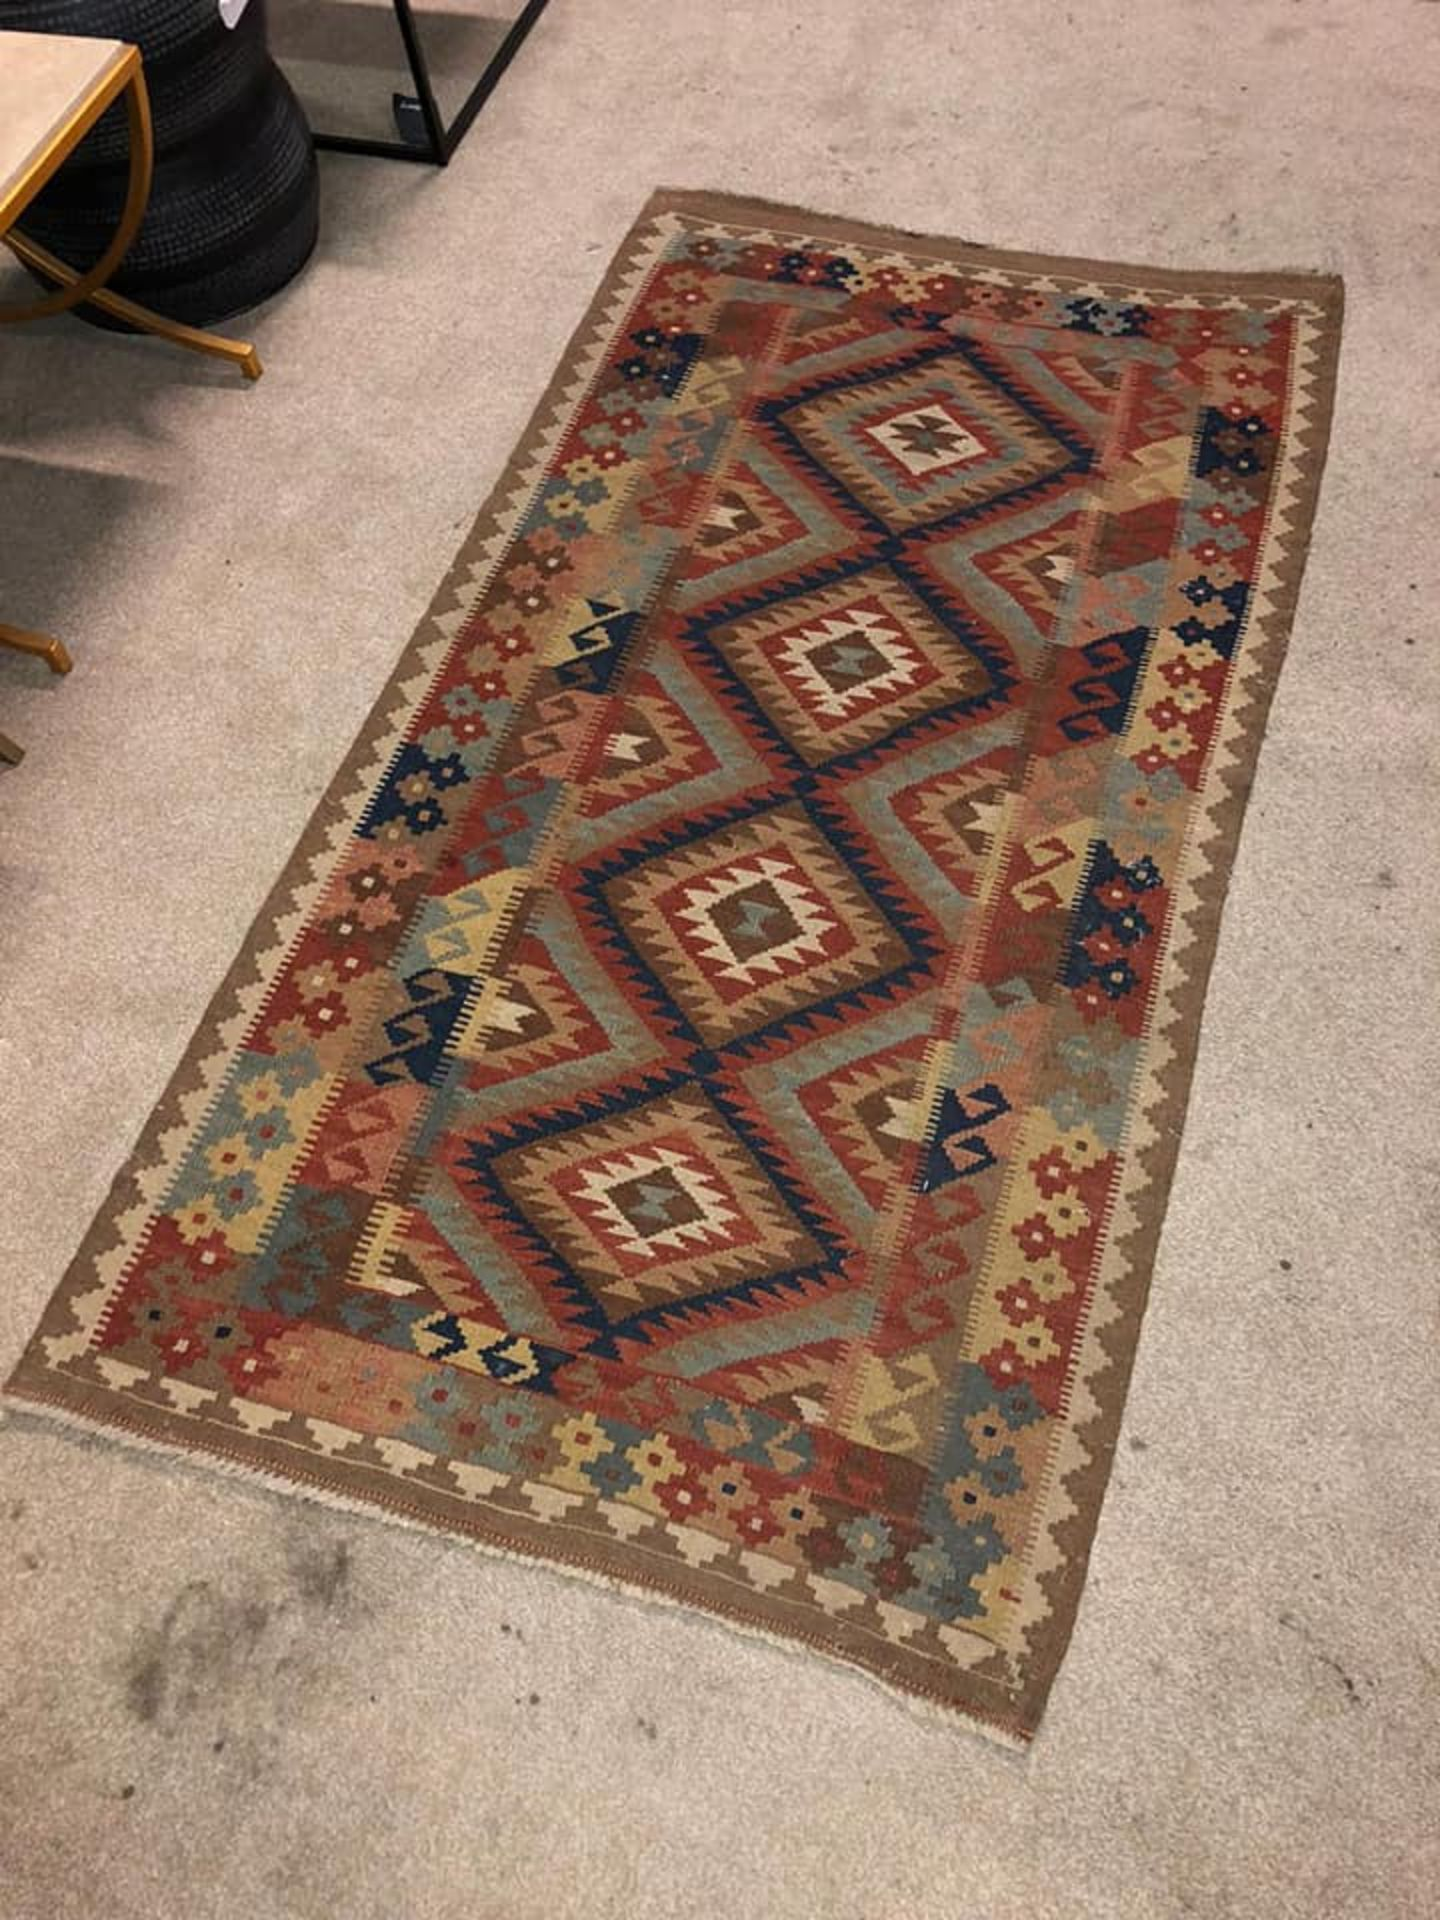 A Vintage Afghani Woven Galmori Rug 100% Short Wool Pile Handmade 180 X 100cm Complete With - Image 2 of 5